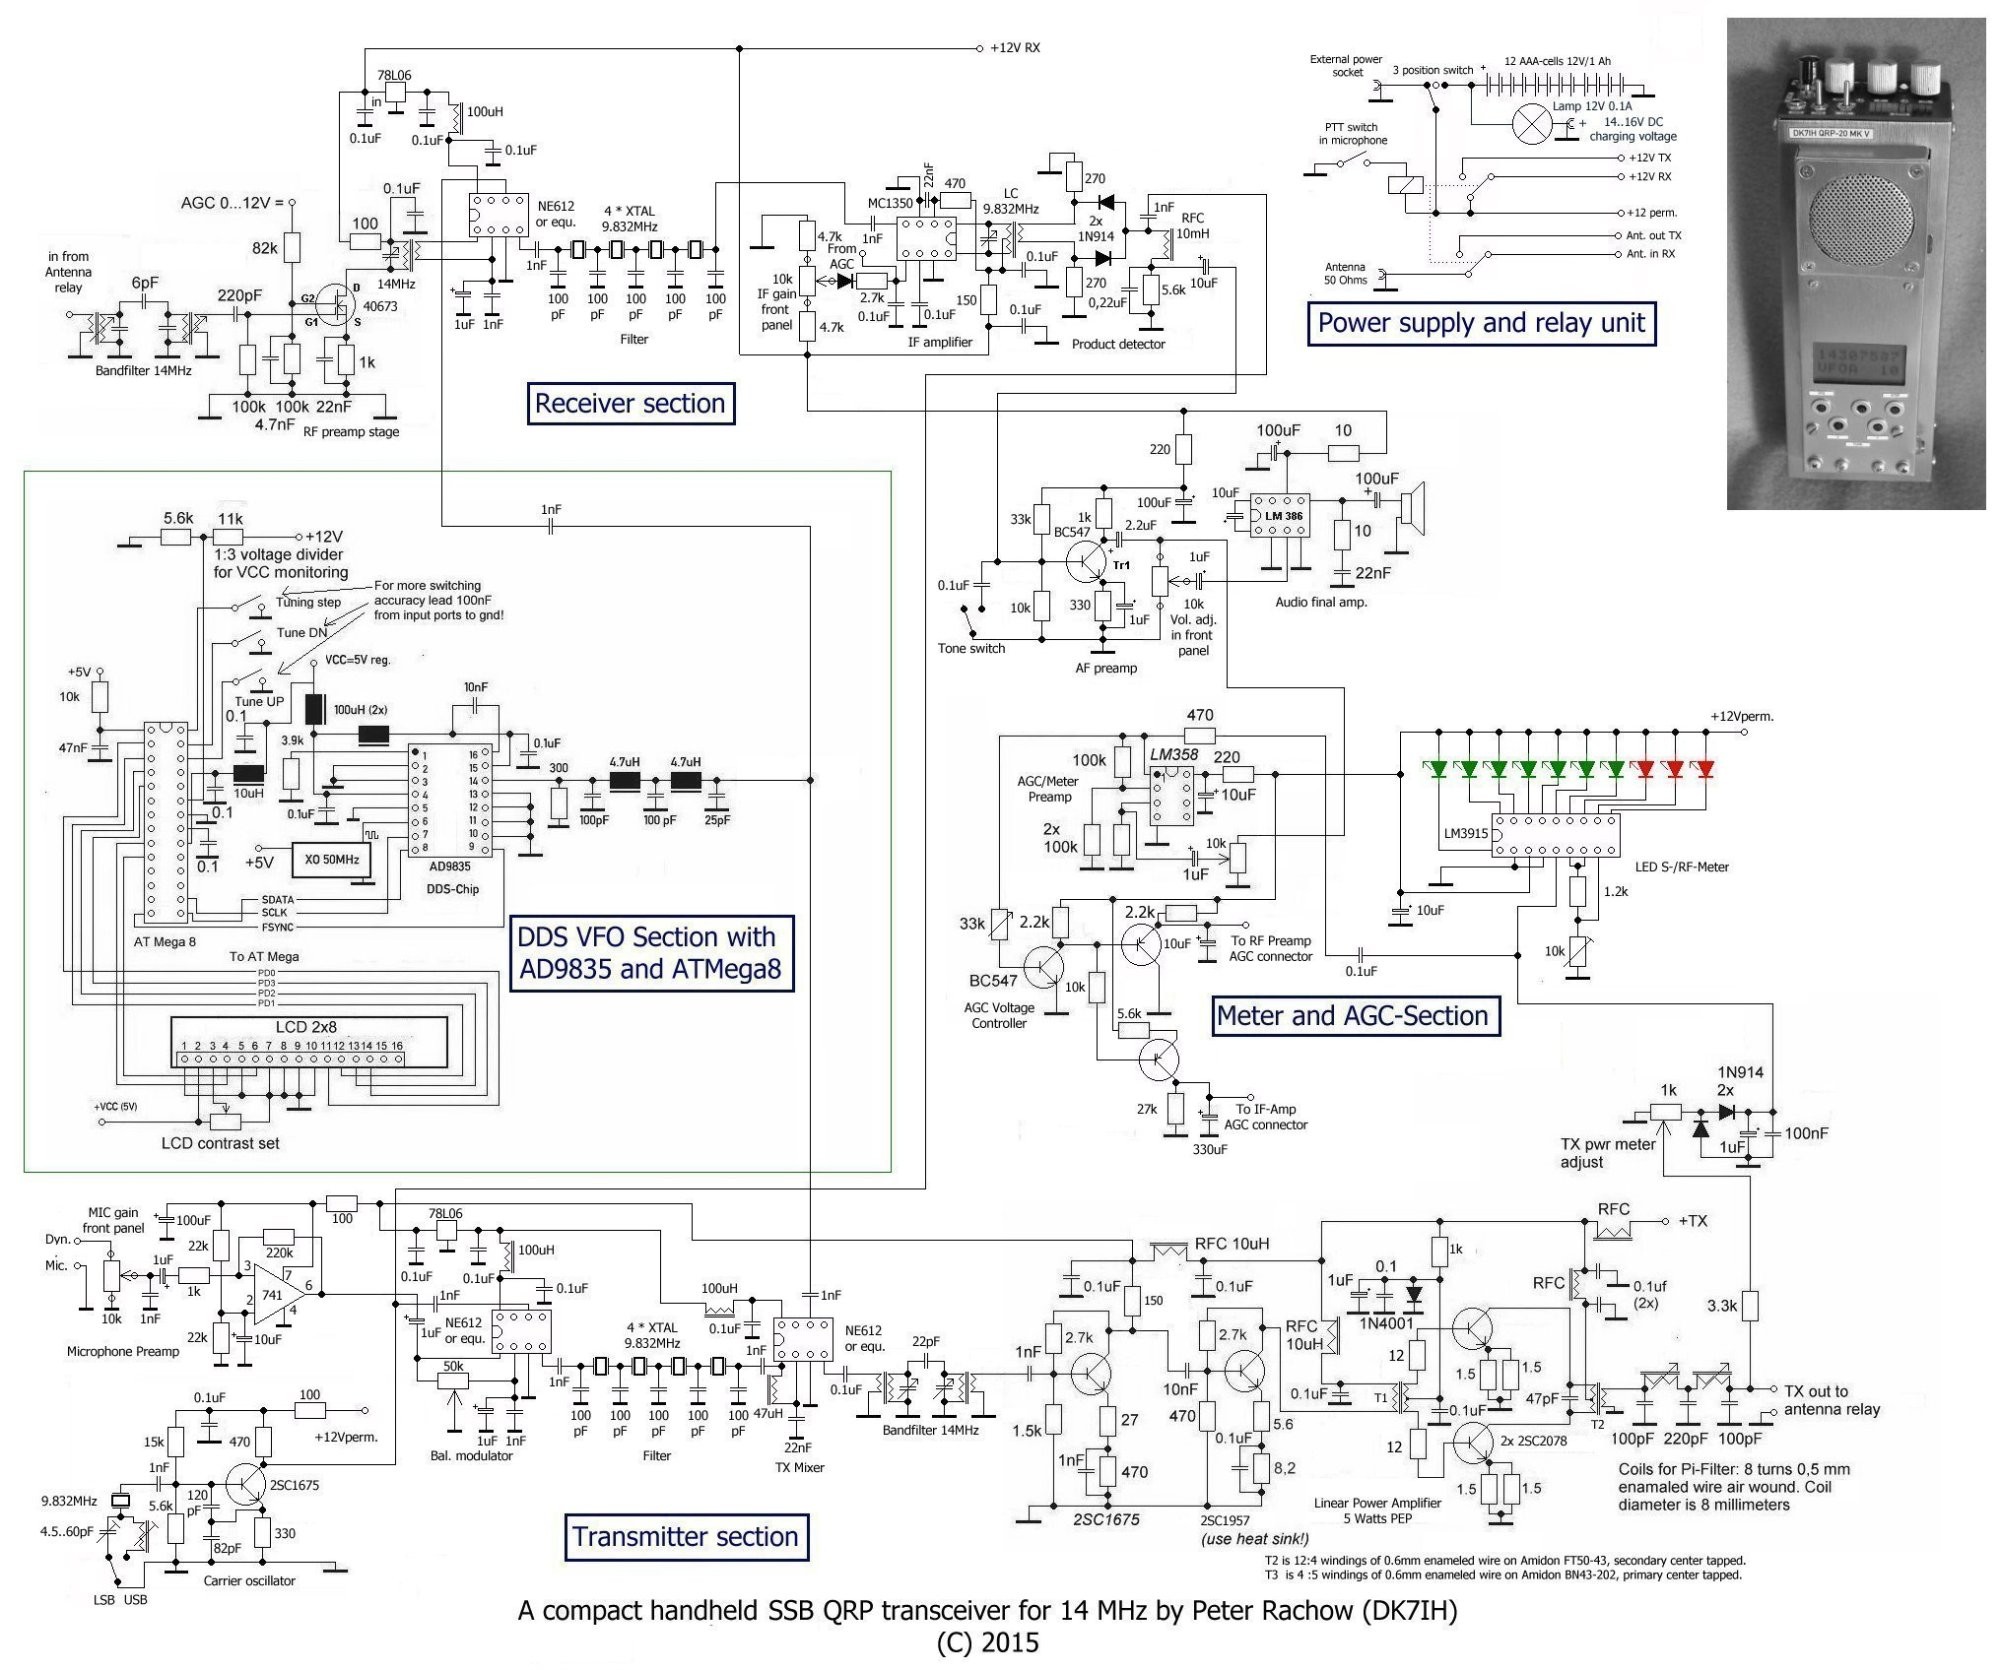 hight resolution of revised schematic of qrp ssb handheld transceiver for 14 mhz 20meter by dk7ih peter